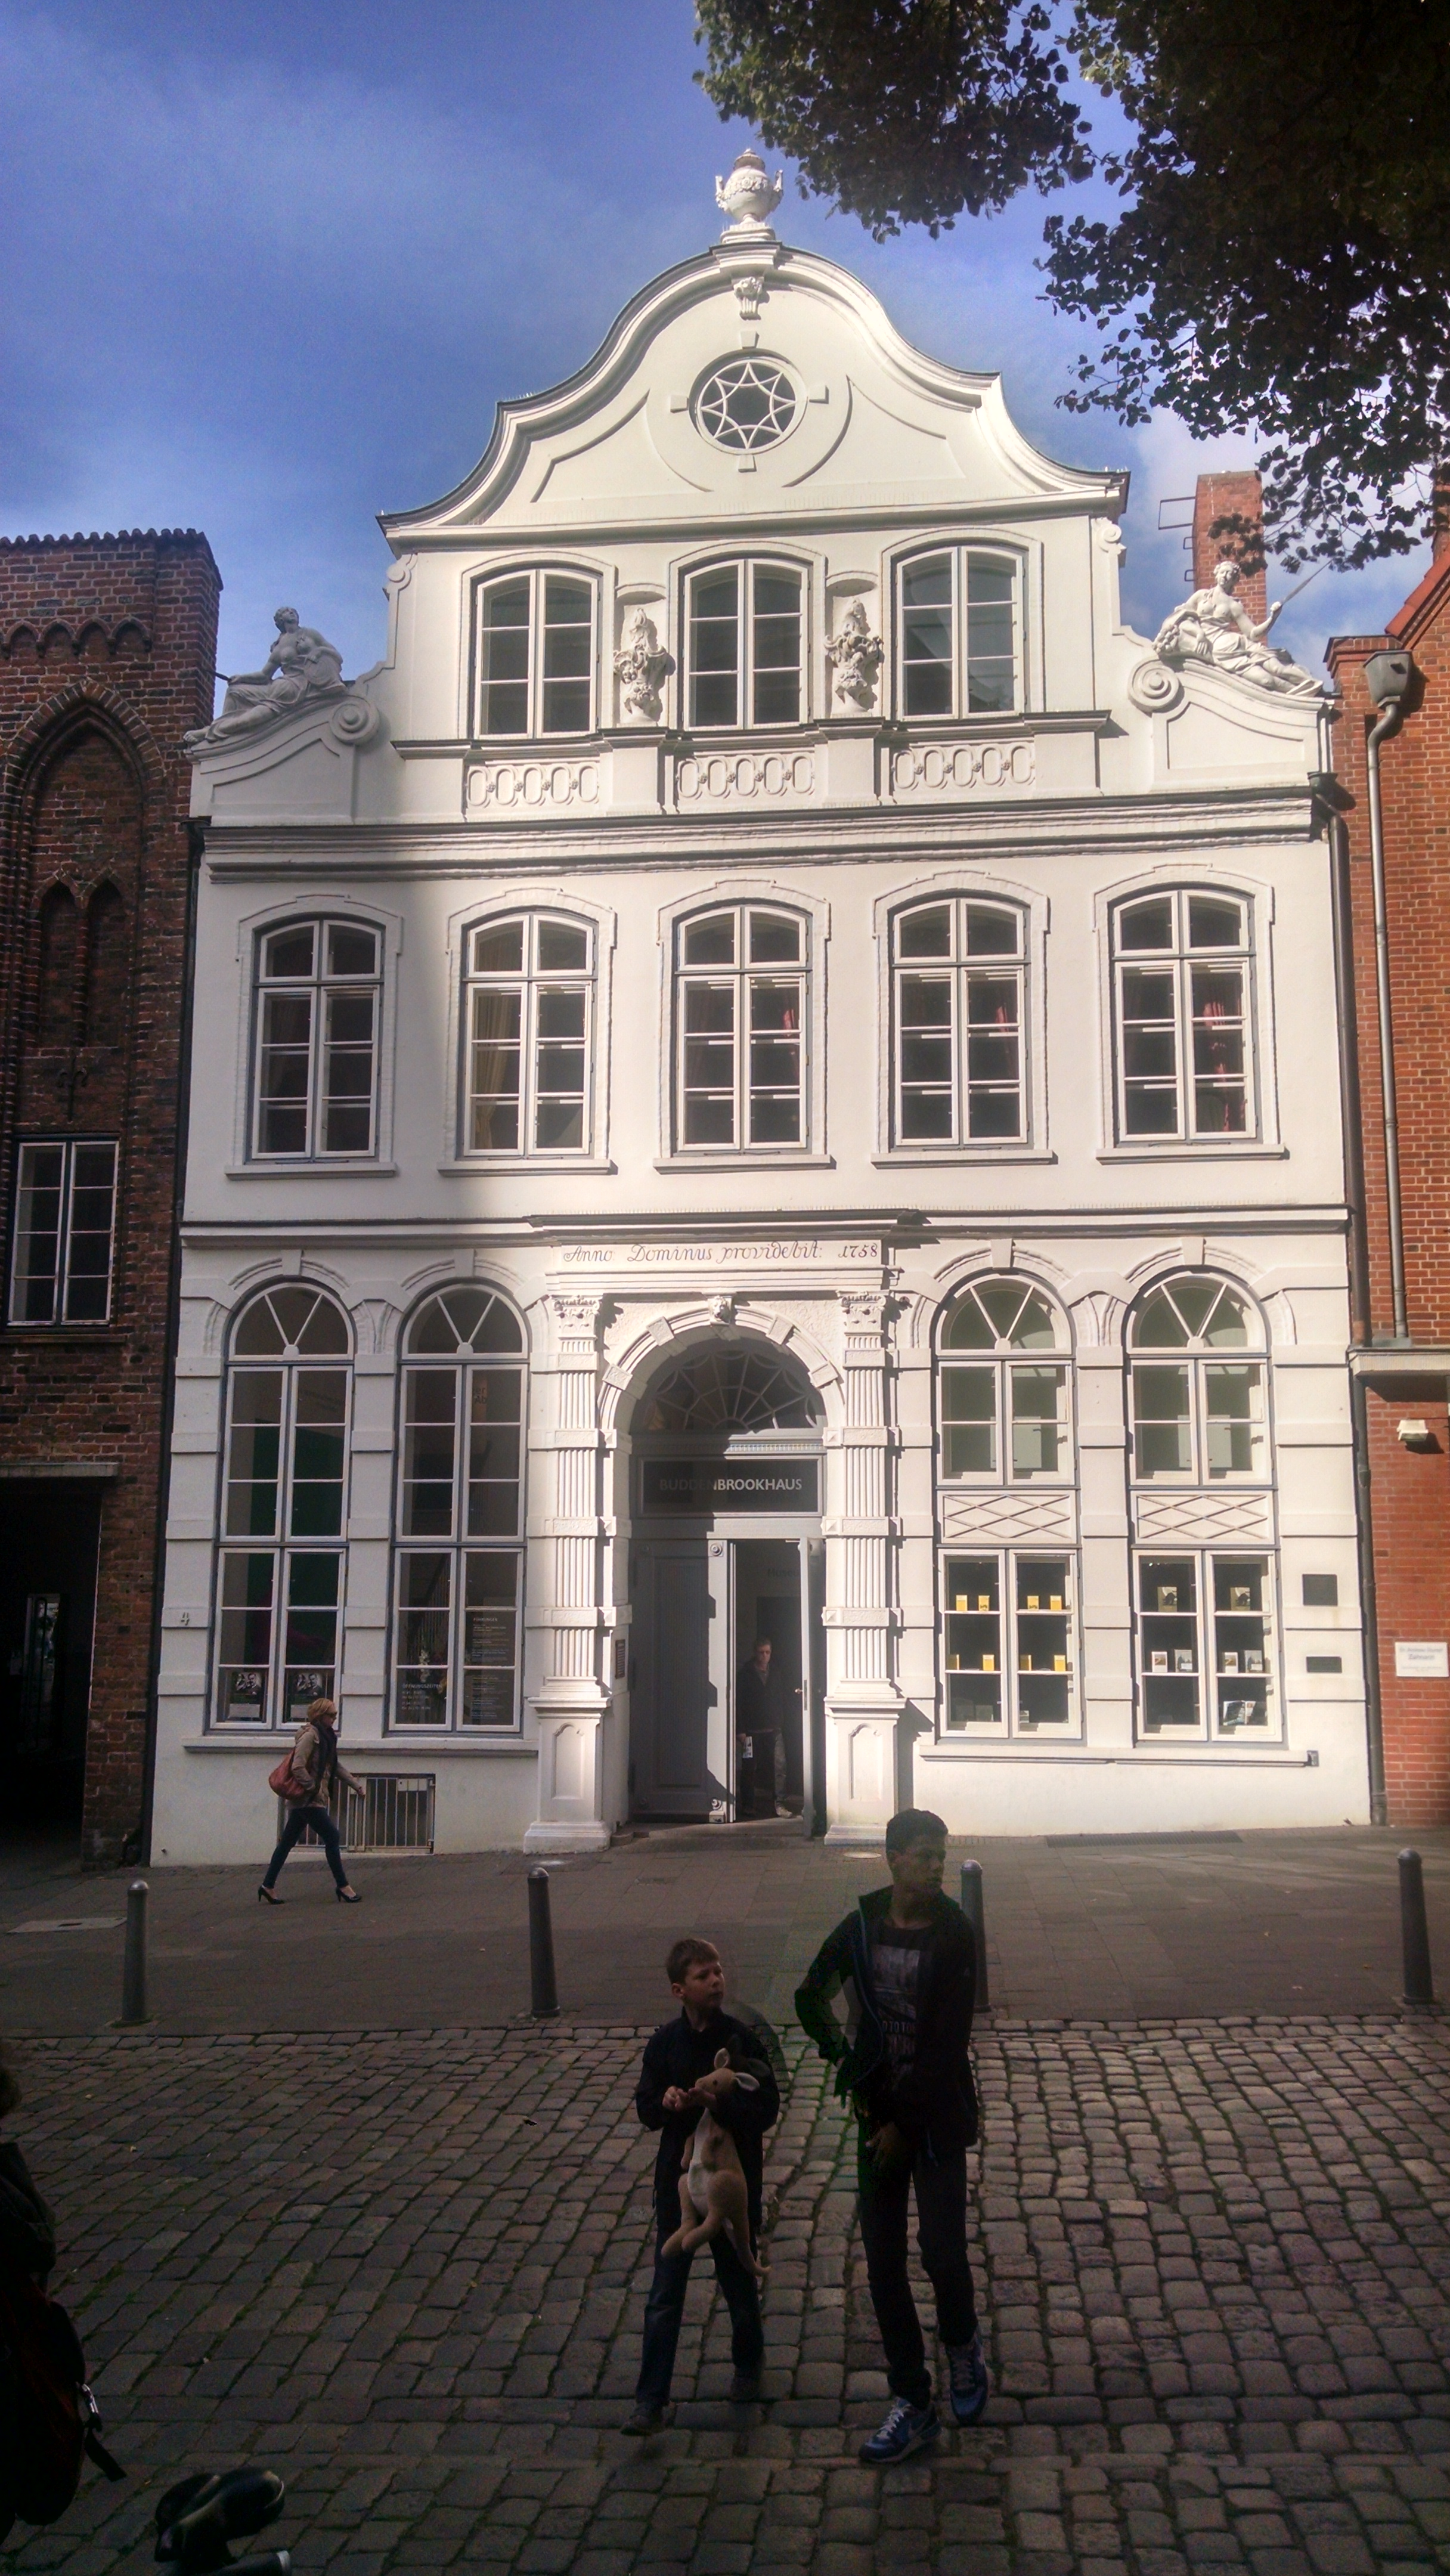 Buddenbrook Haus, Lübeck - Gamesforlanguage.com